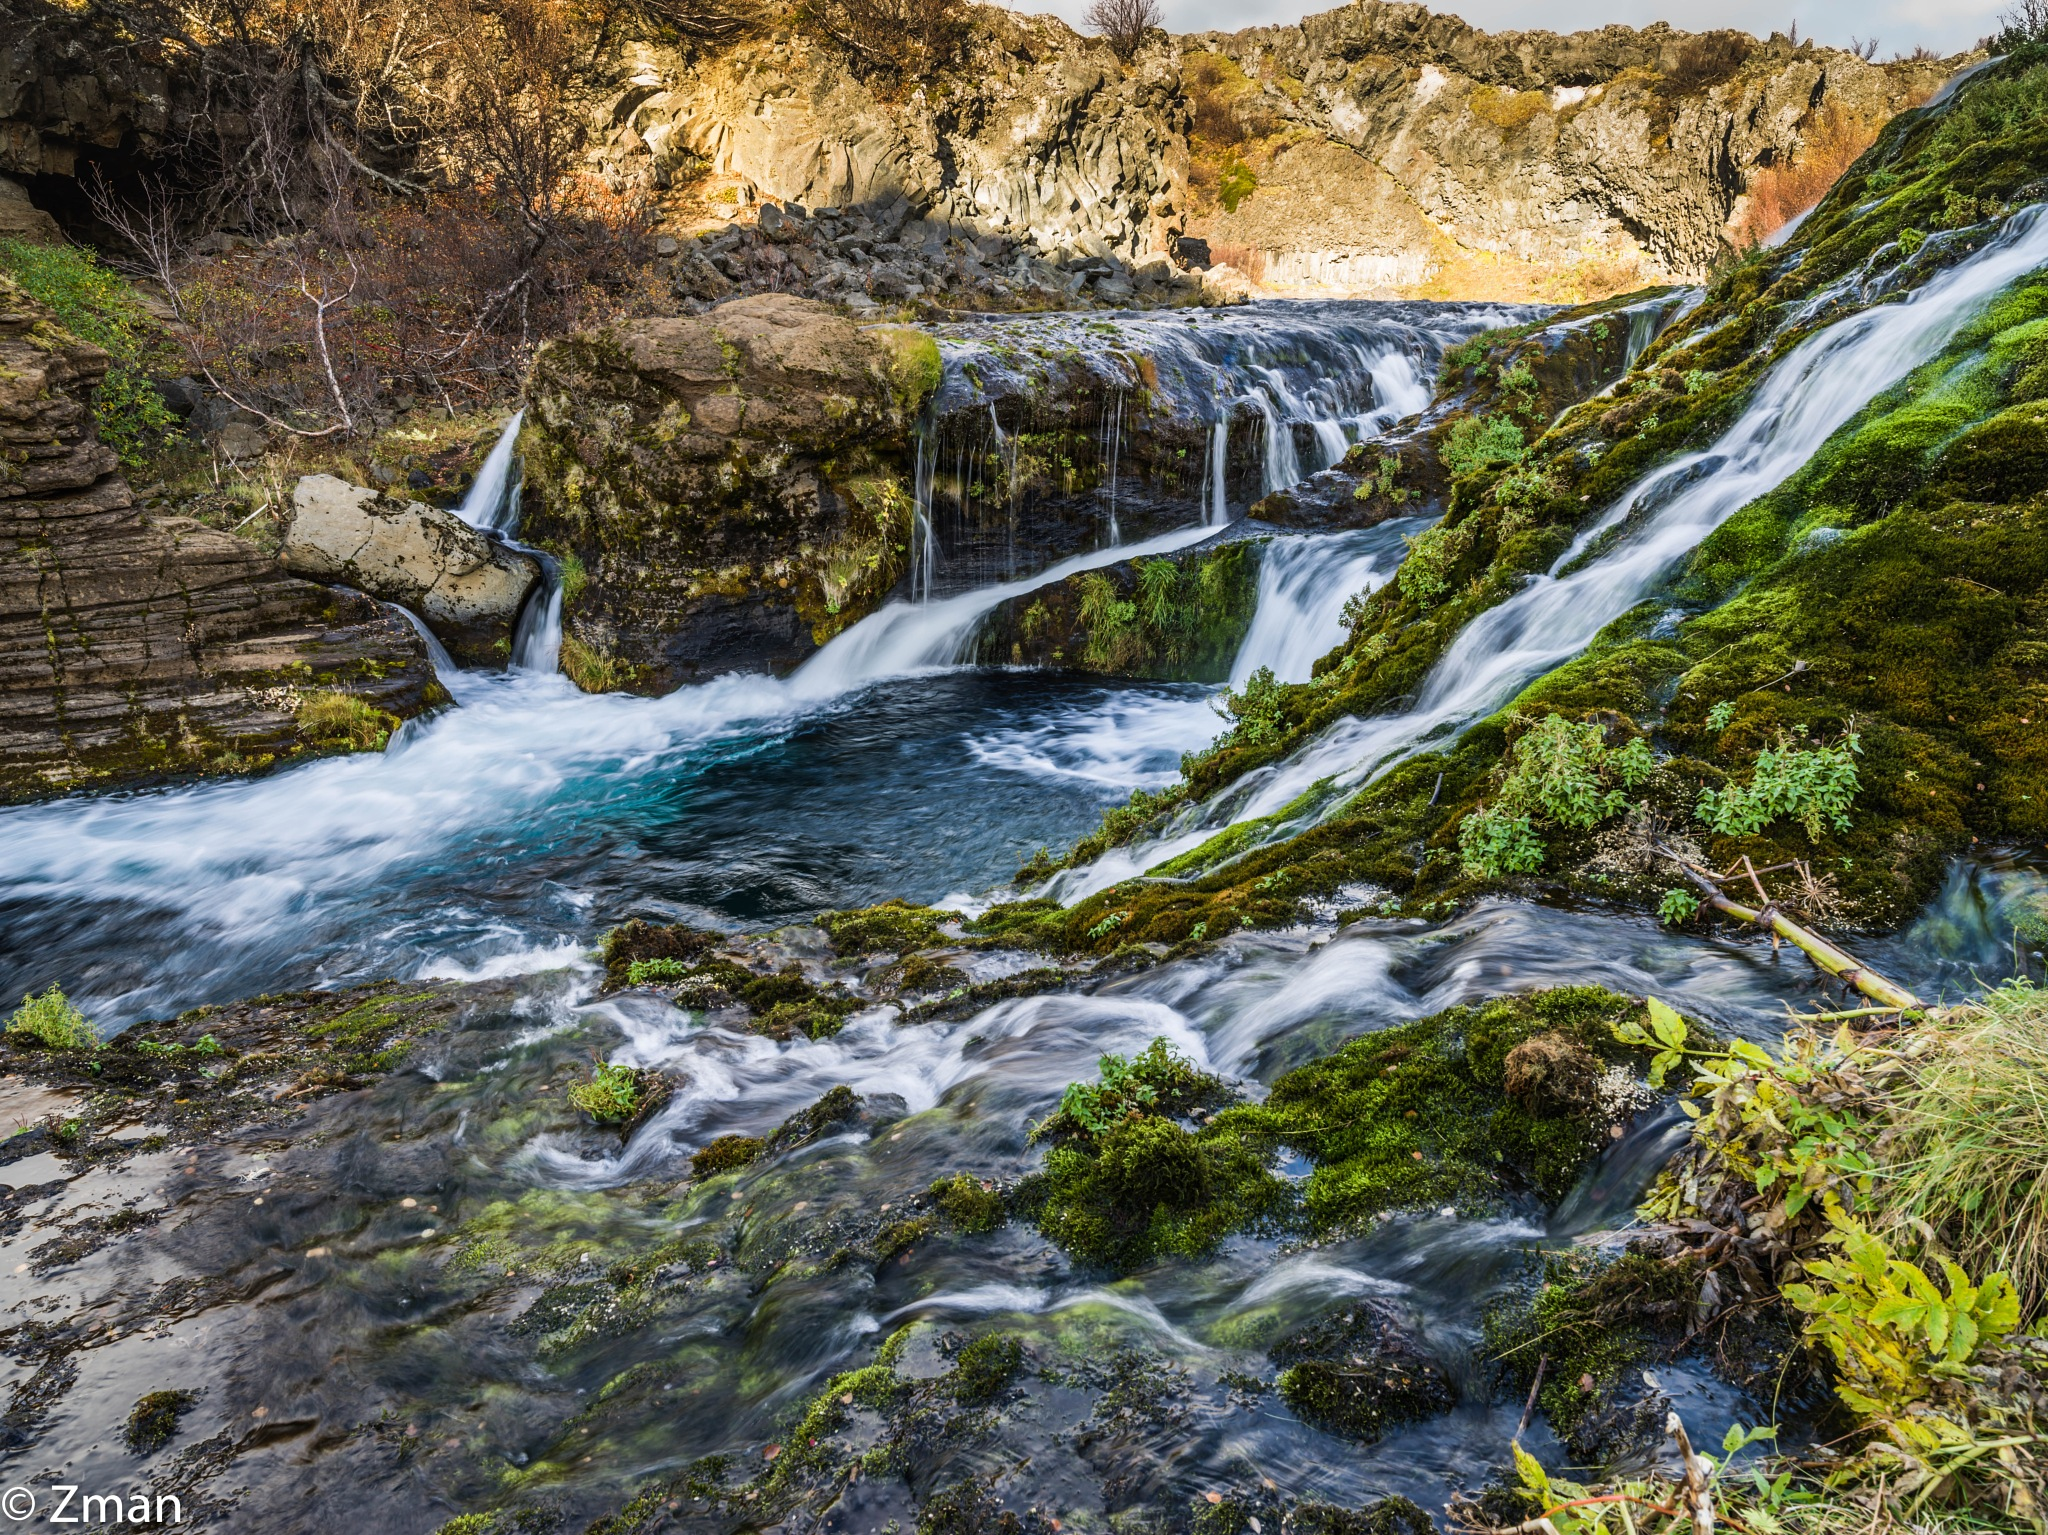 The Green Gorge and Waters of Gjáin. by muhammad.nasser.963